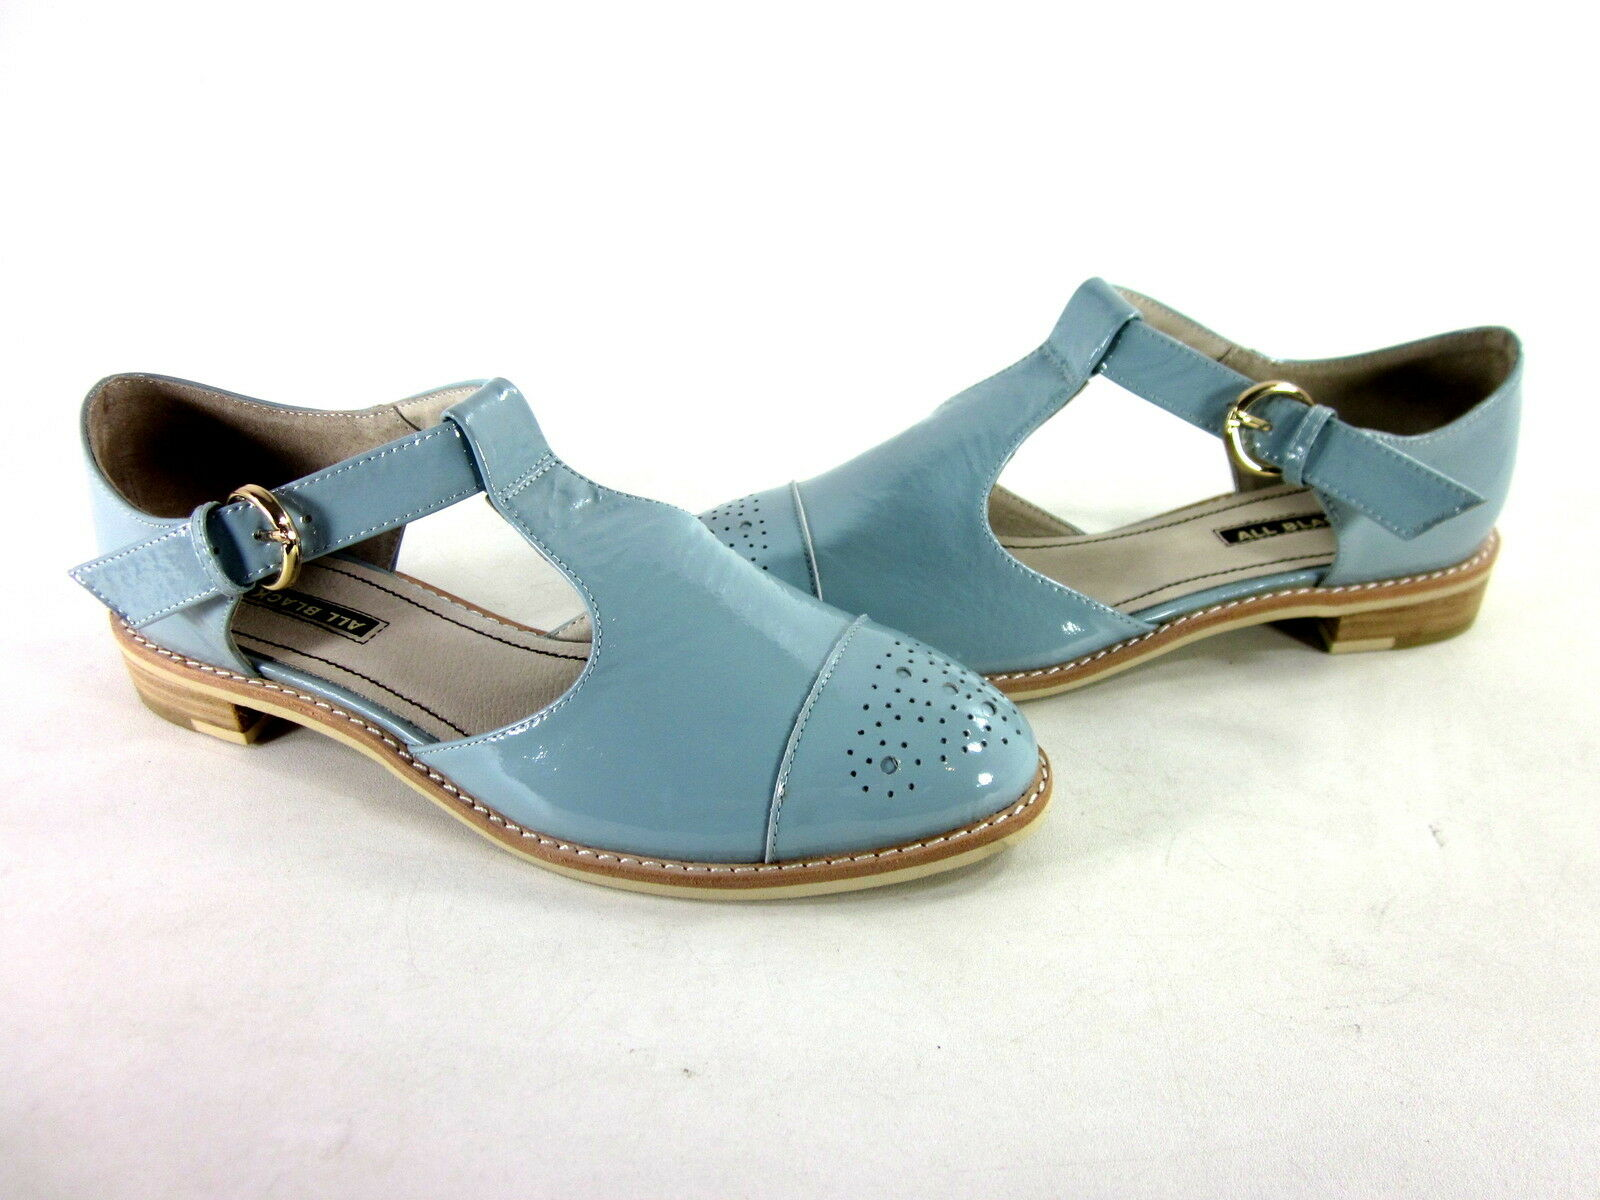 ALL BLACK WOMEN'S SANDAL OX OXFORD SANDAL LT Blau KID LEATHER EUR SZ 37 MEDIUM